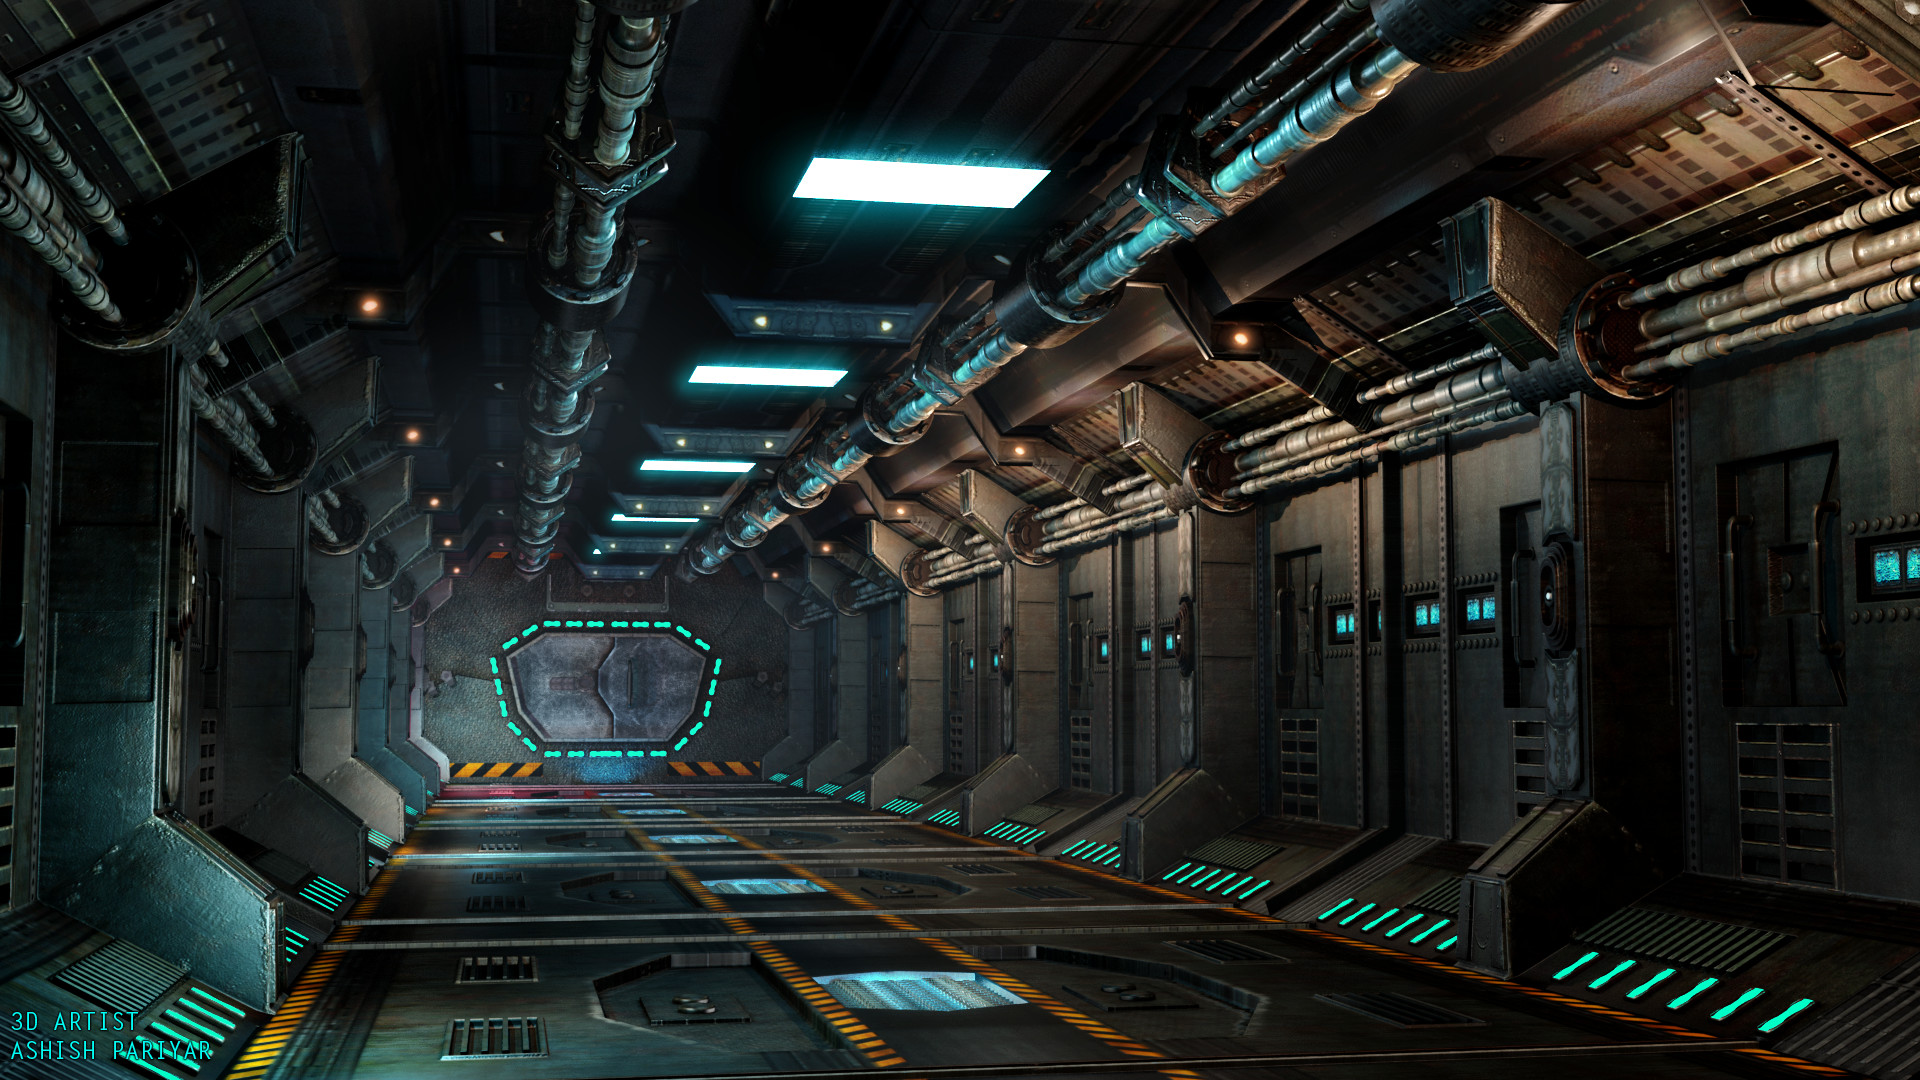 ArtStation - Sci Fi 3d Environment Hall by Ashish Pariyar